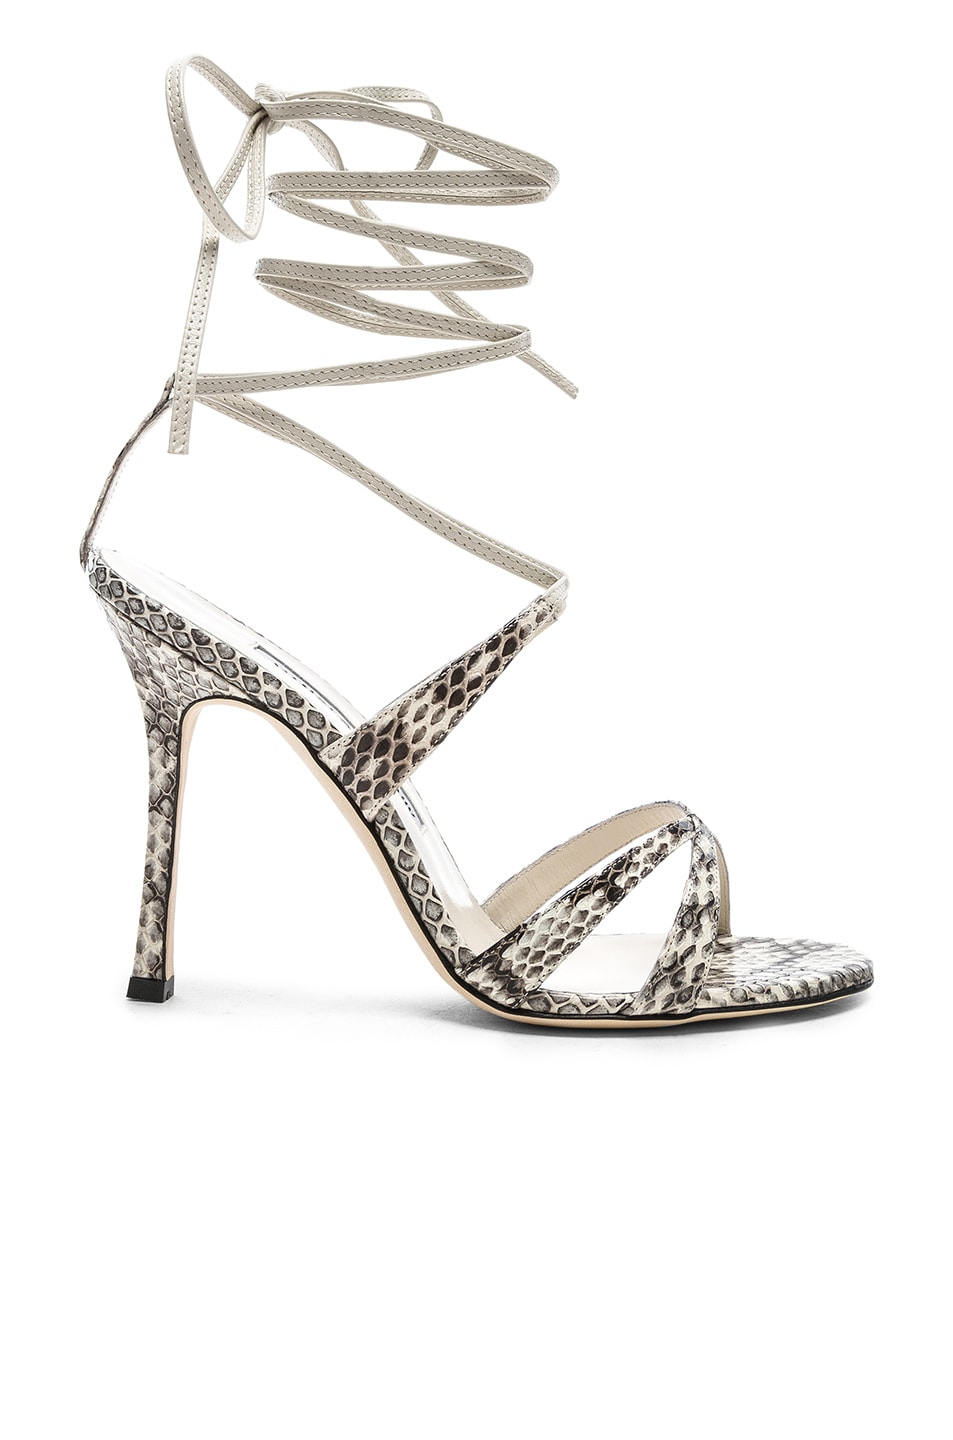 Image 1 of Manolo Blahnik Criss 105 Sandals in Black & White Natural Watersnake